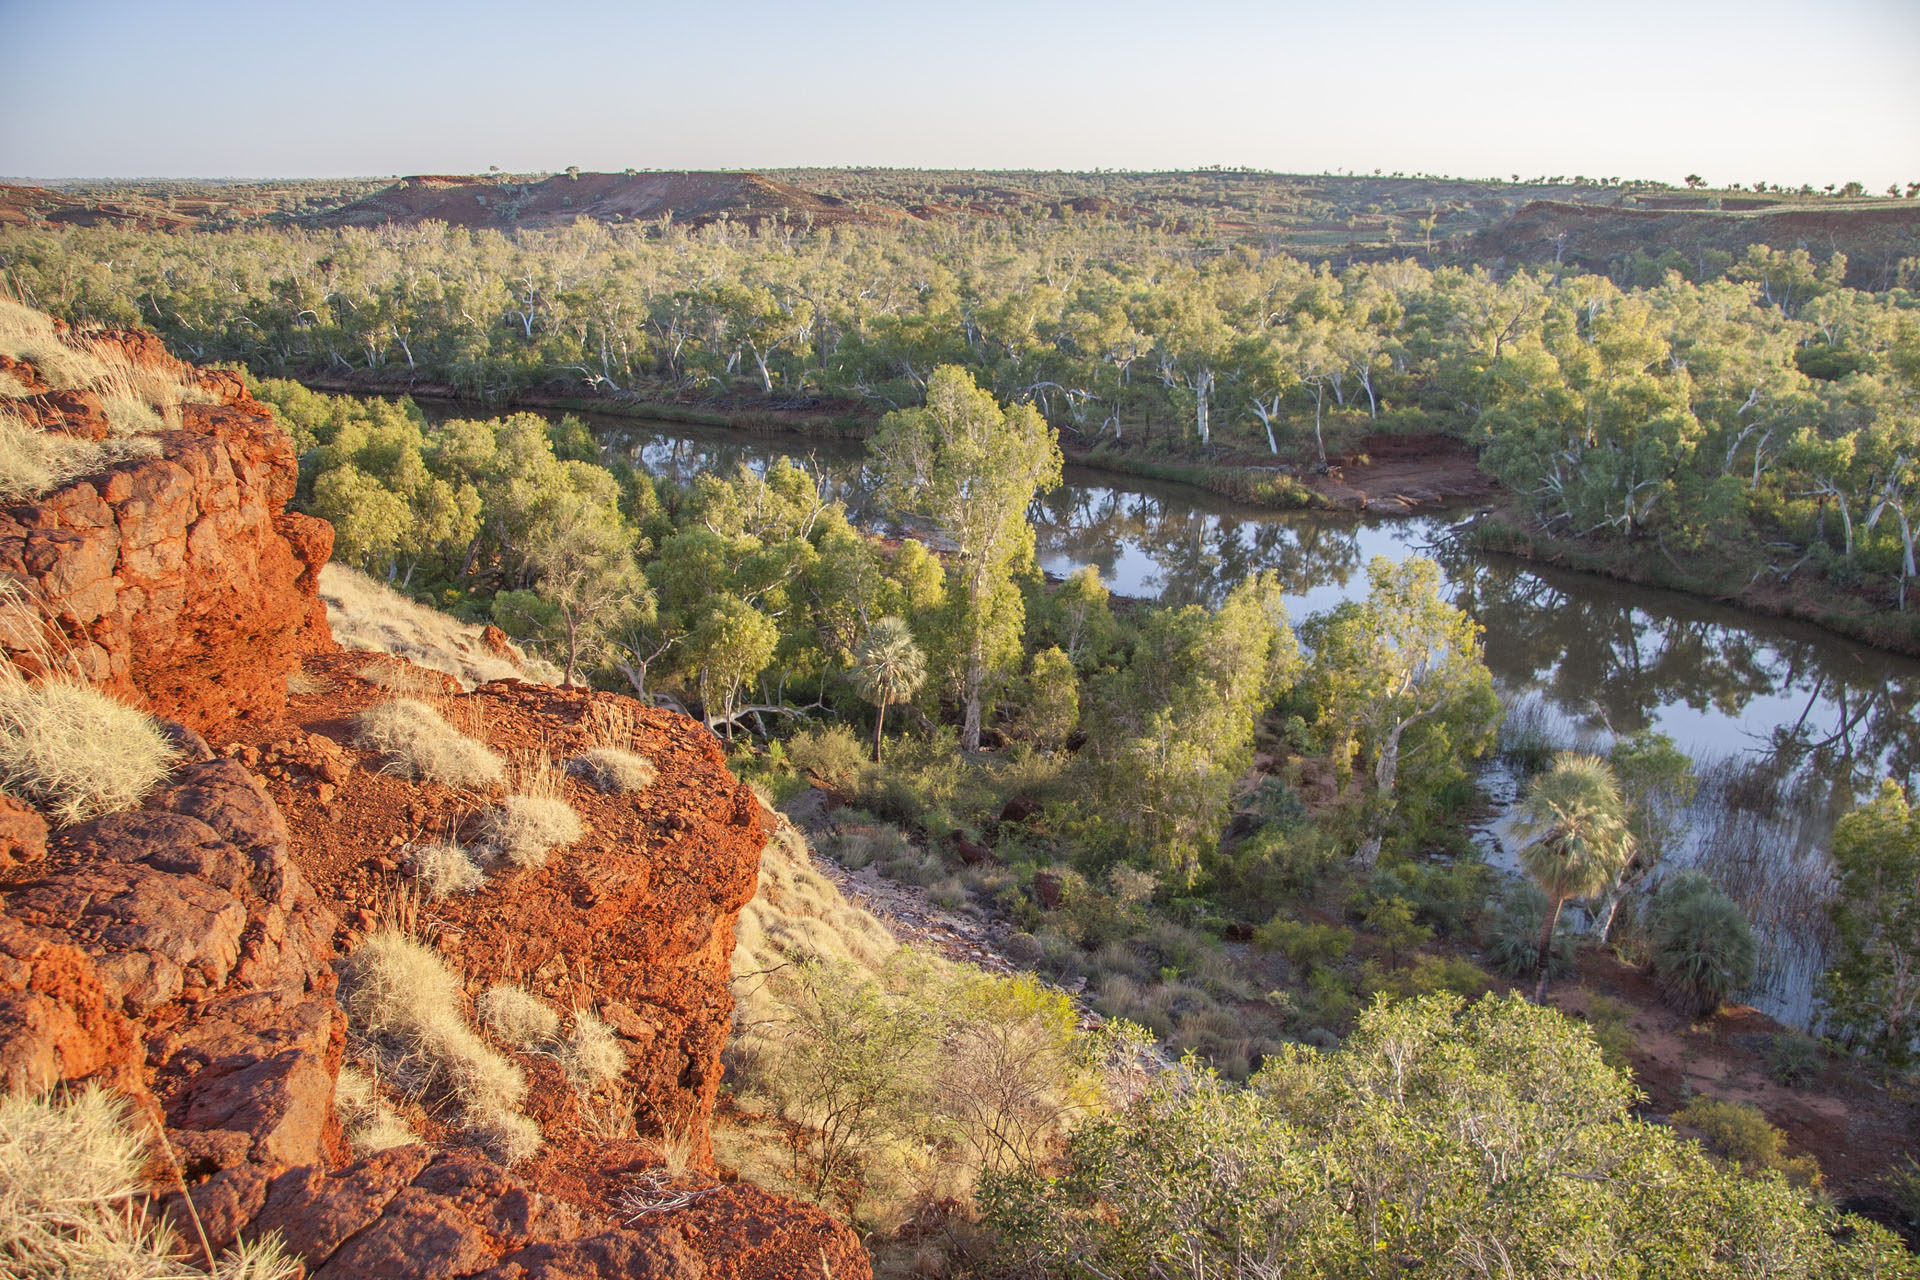 The Fortescue River.